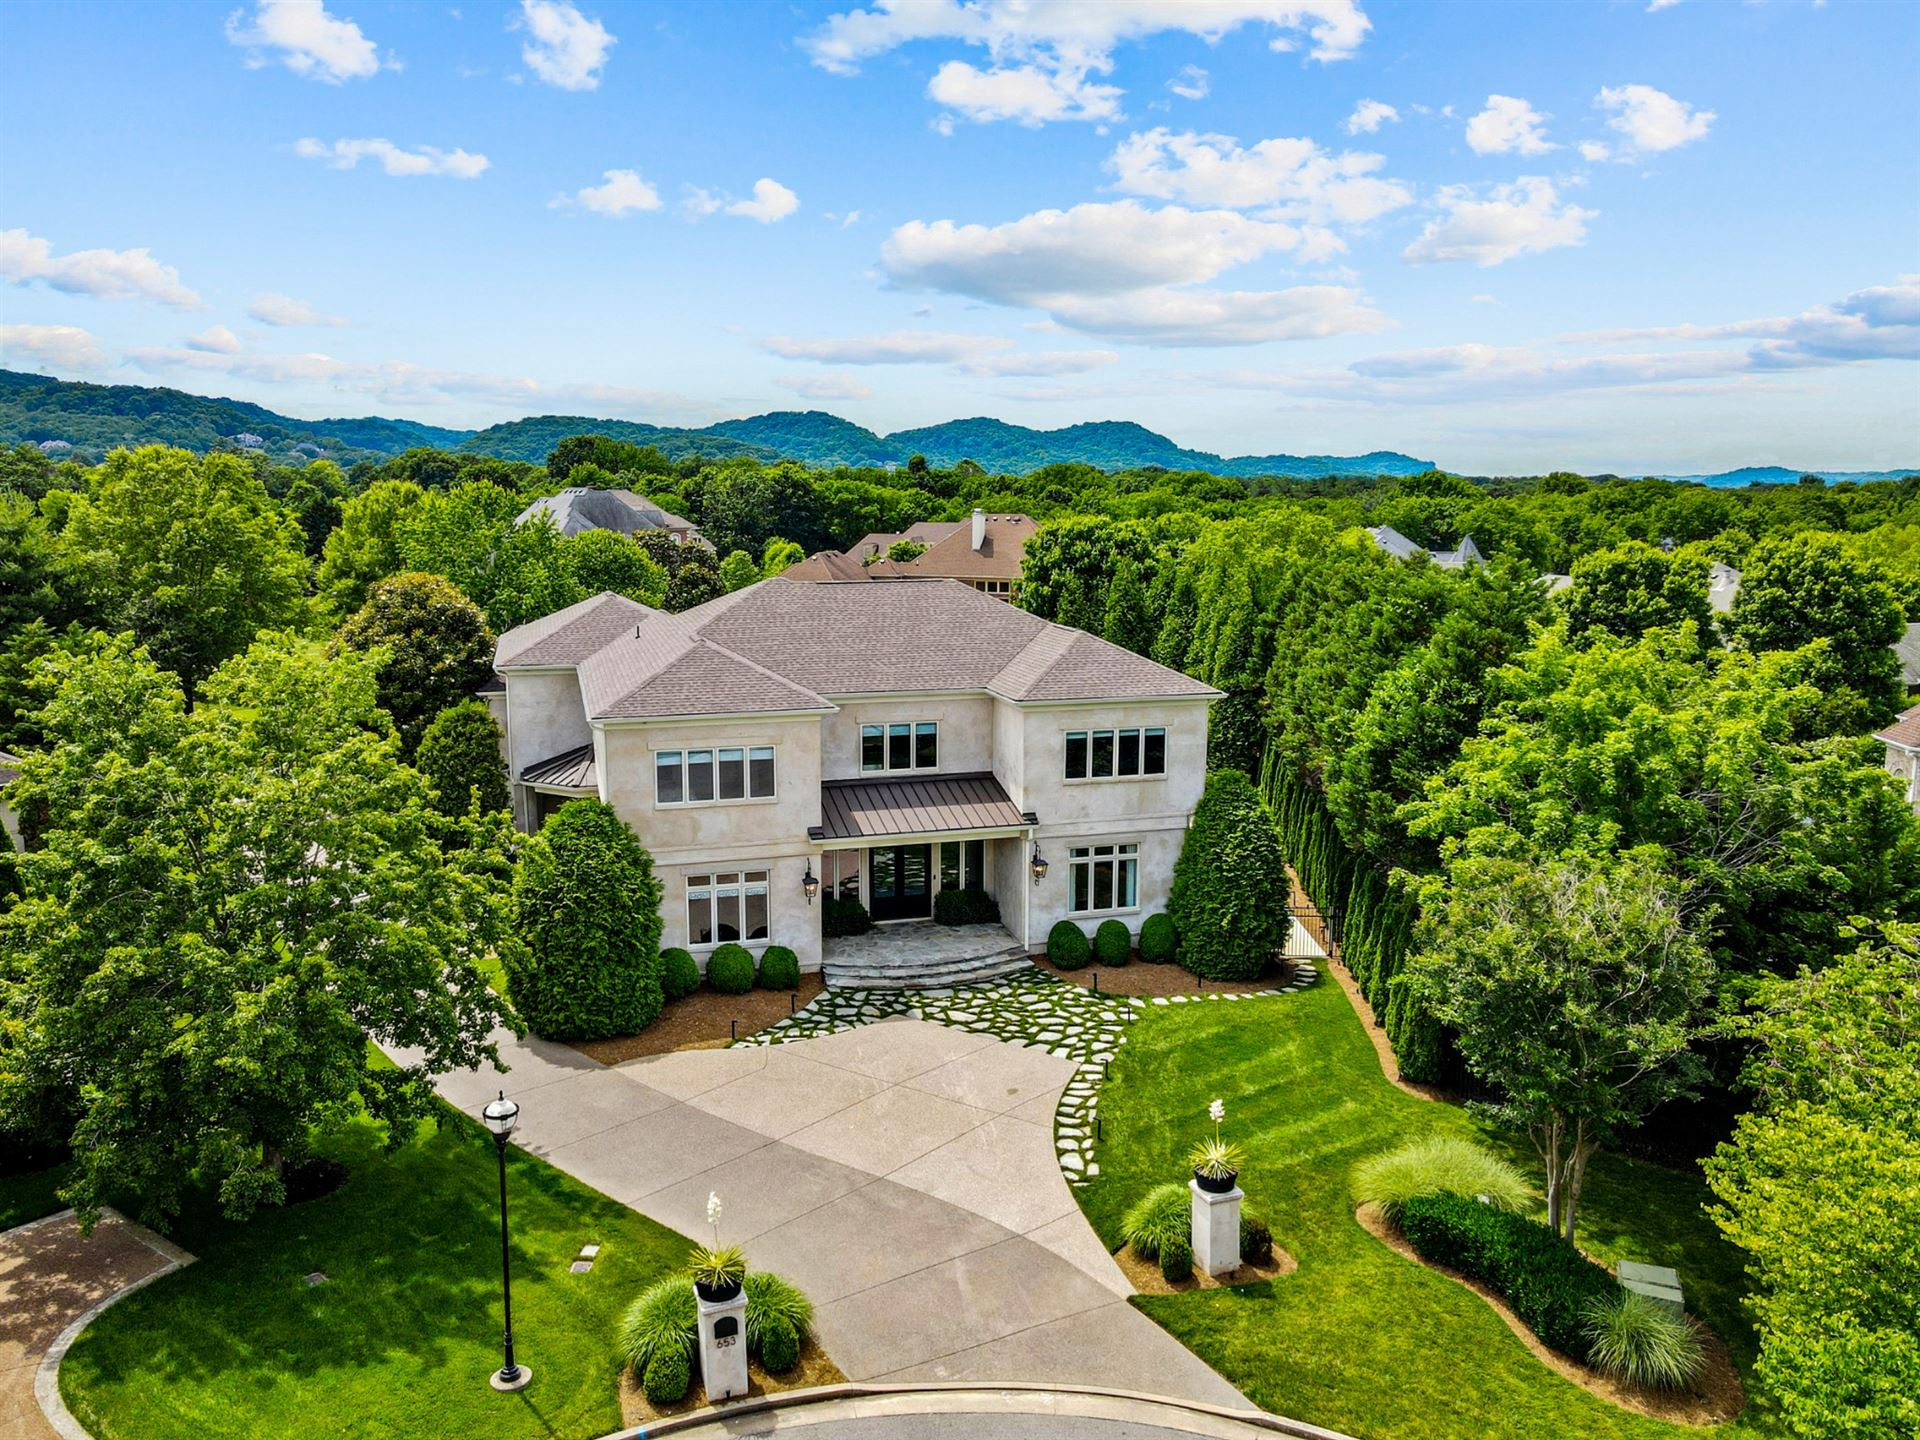 653 Chiswell Ct, Brentwood, TN 37027 - MLS#: 2269760